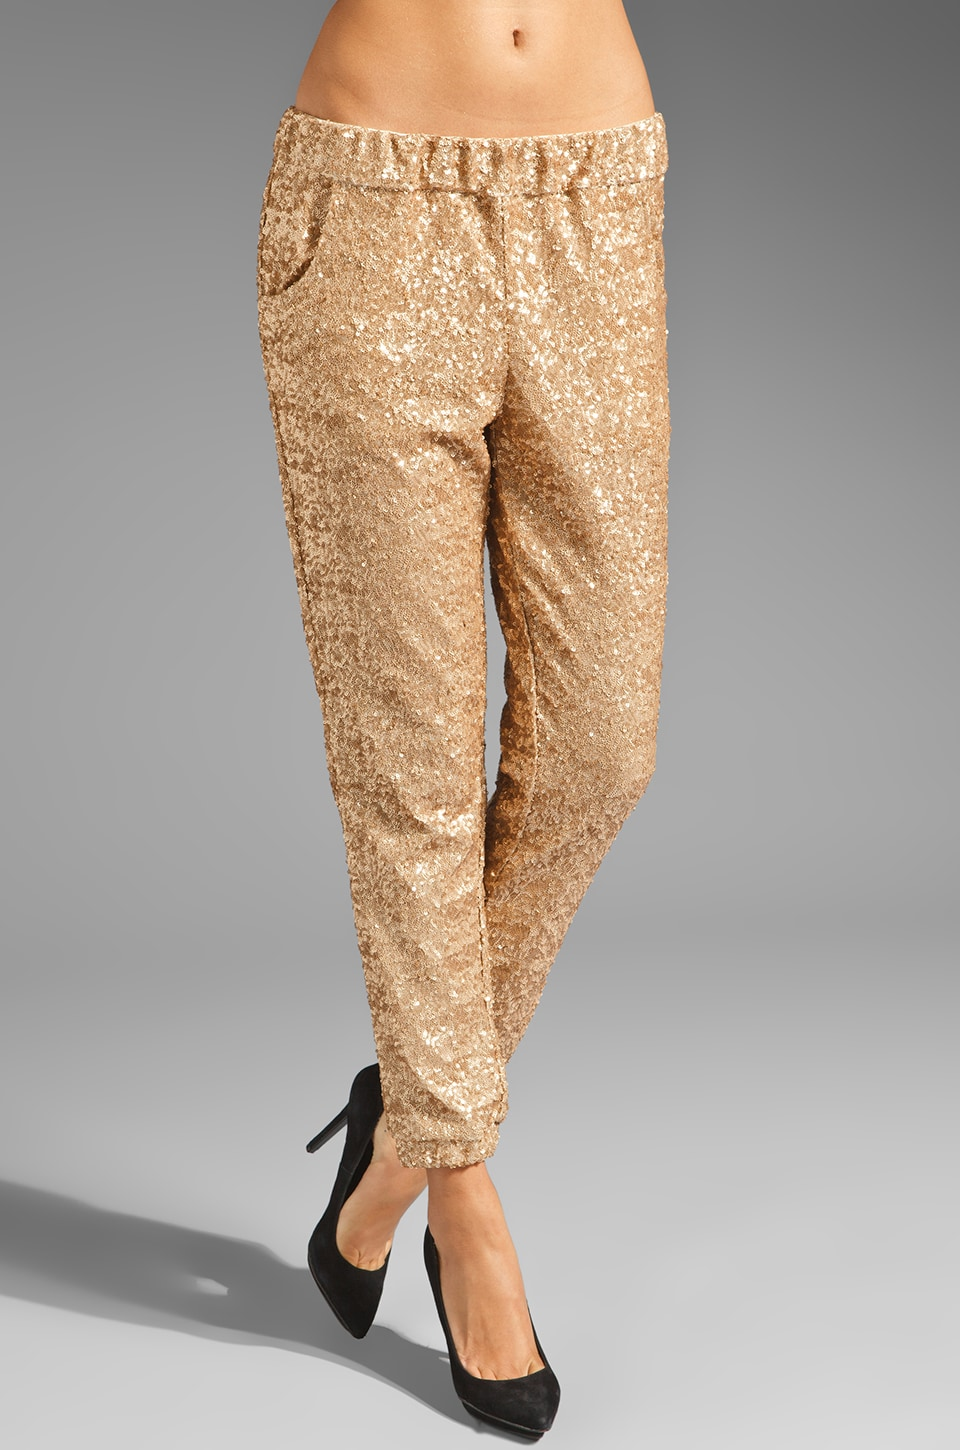 Free People Sequin Party Pant in Champagne